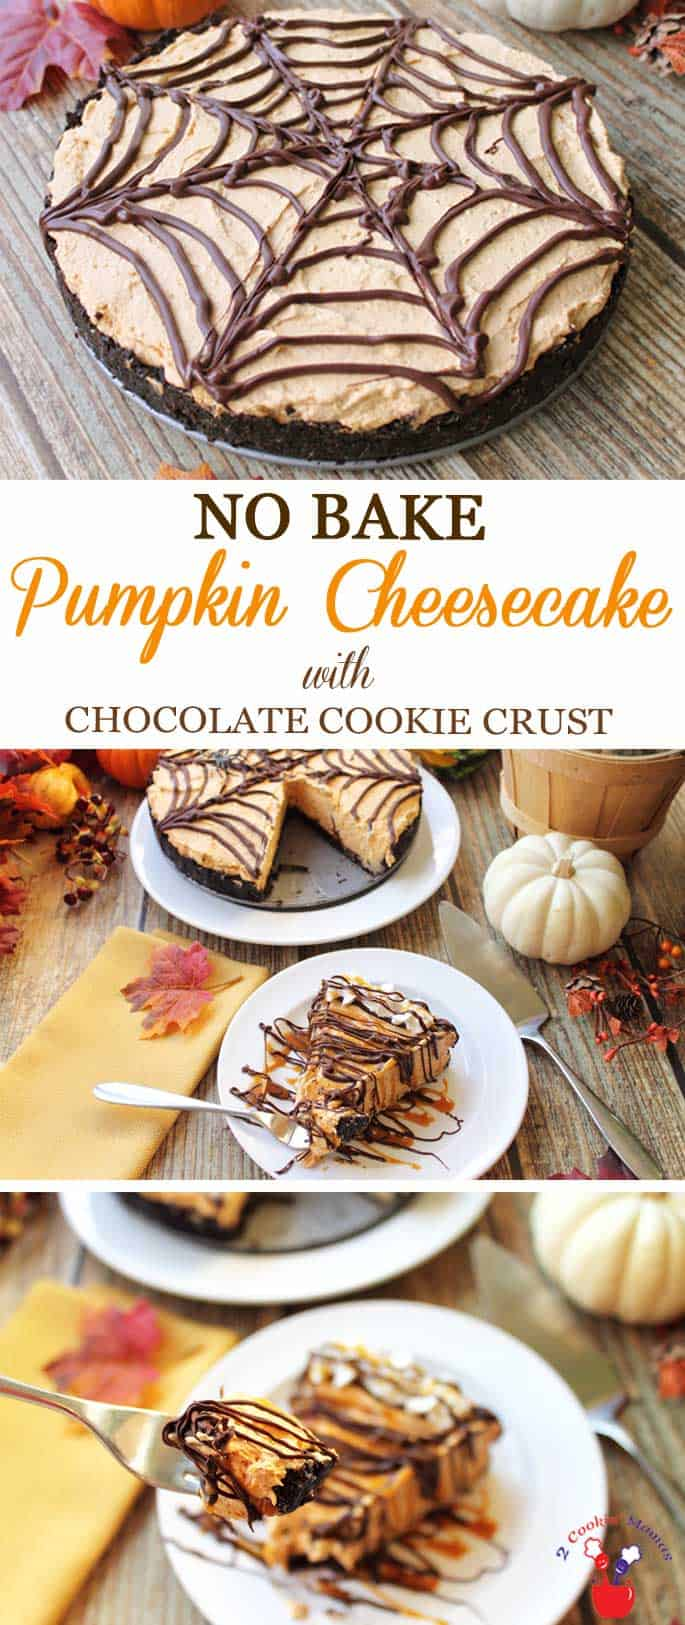 No Bake Pumpkin Cheesecake With Chocolate Cookie Crust 2